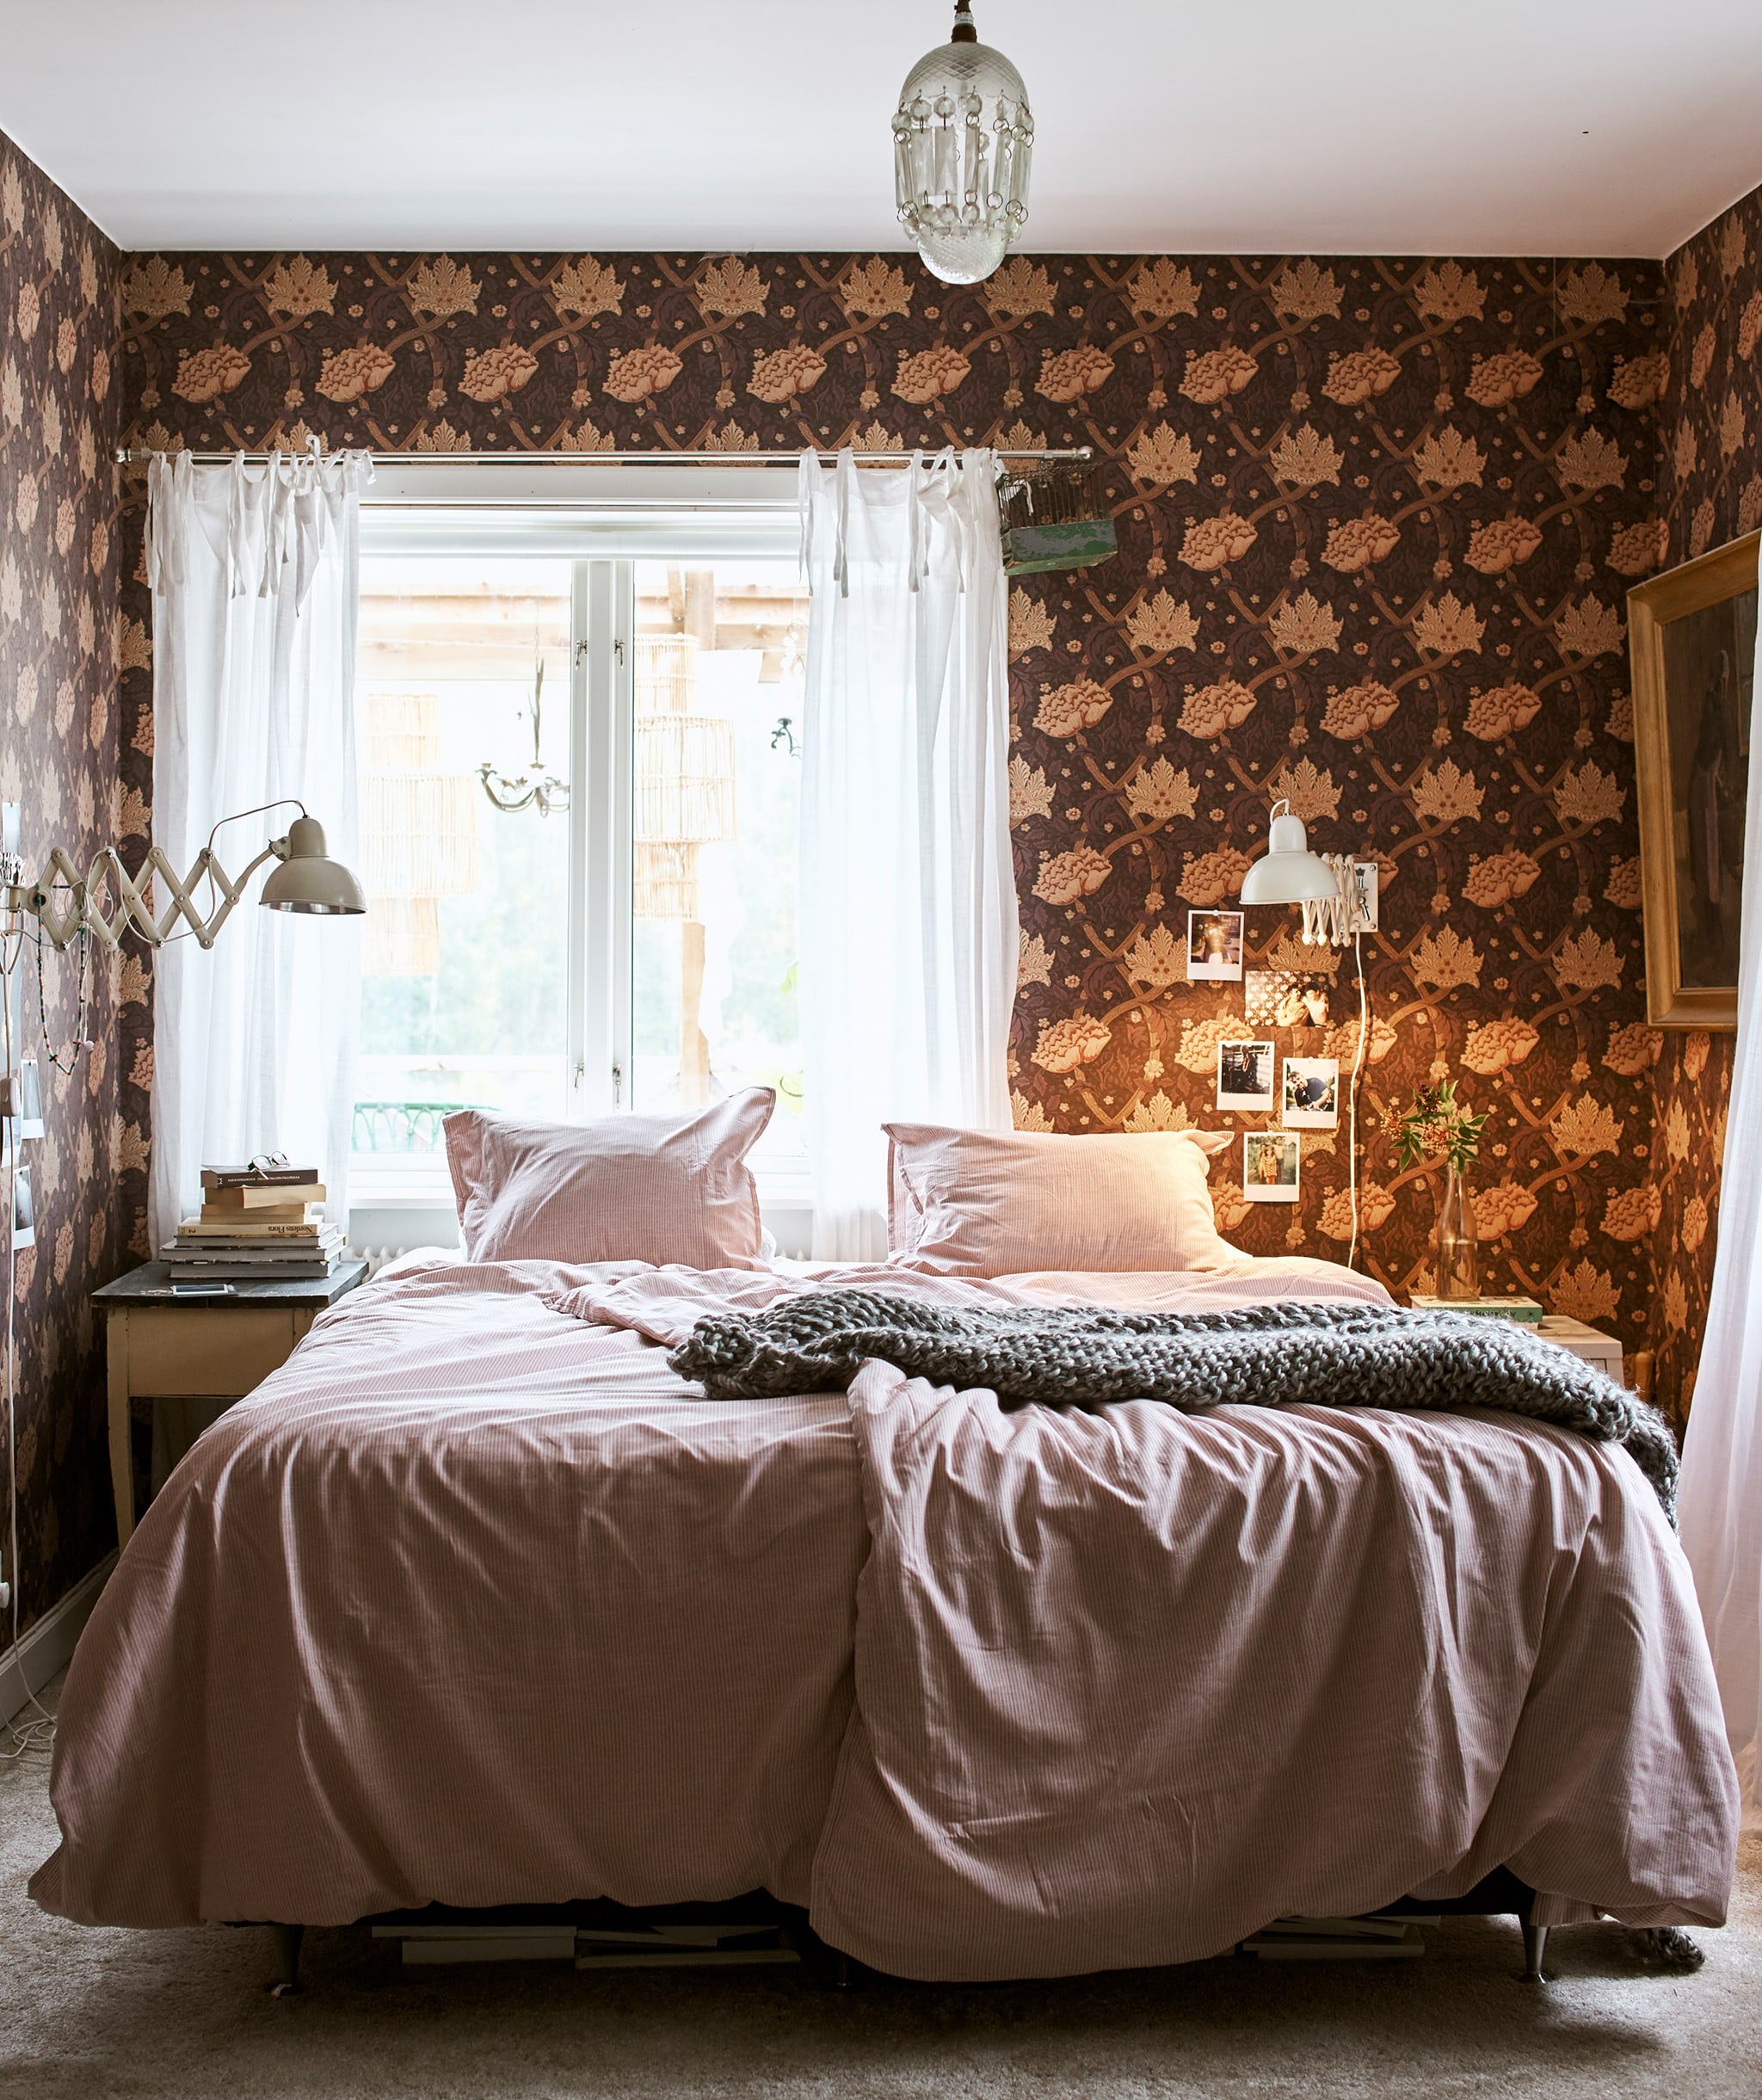 A bed made up with pink bedding and a grey throw in the centre of a room with a chandelier and floral patterned wallpaper.